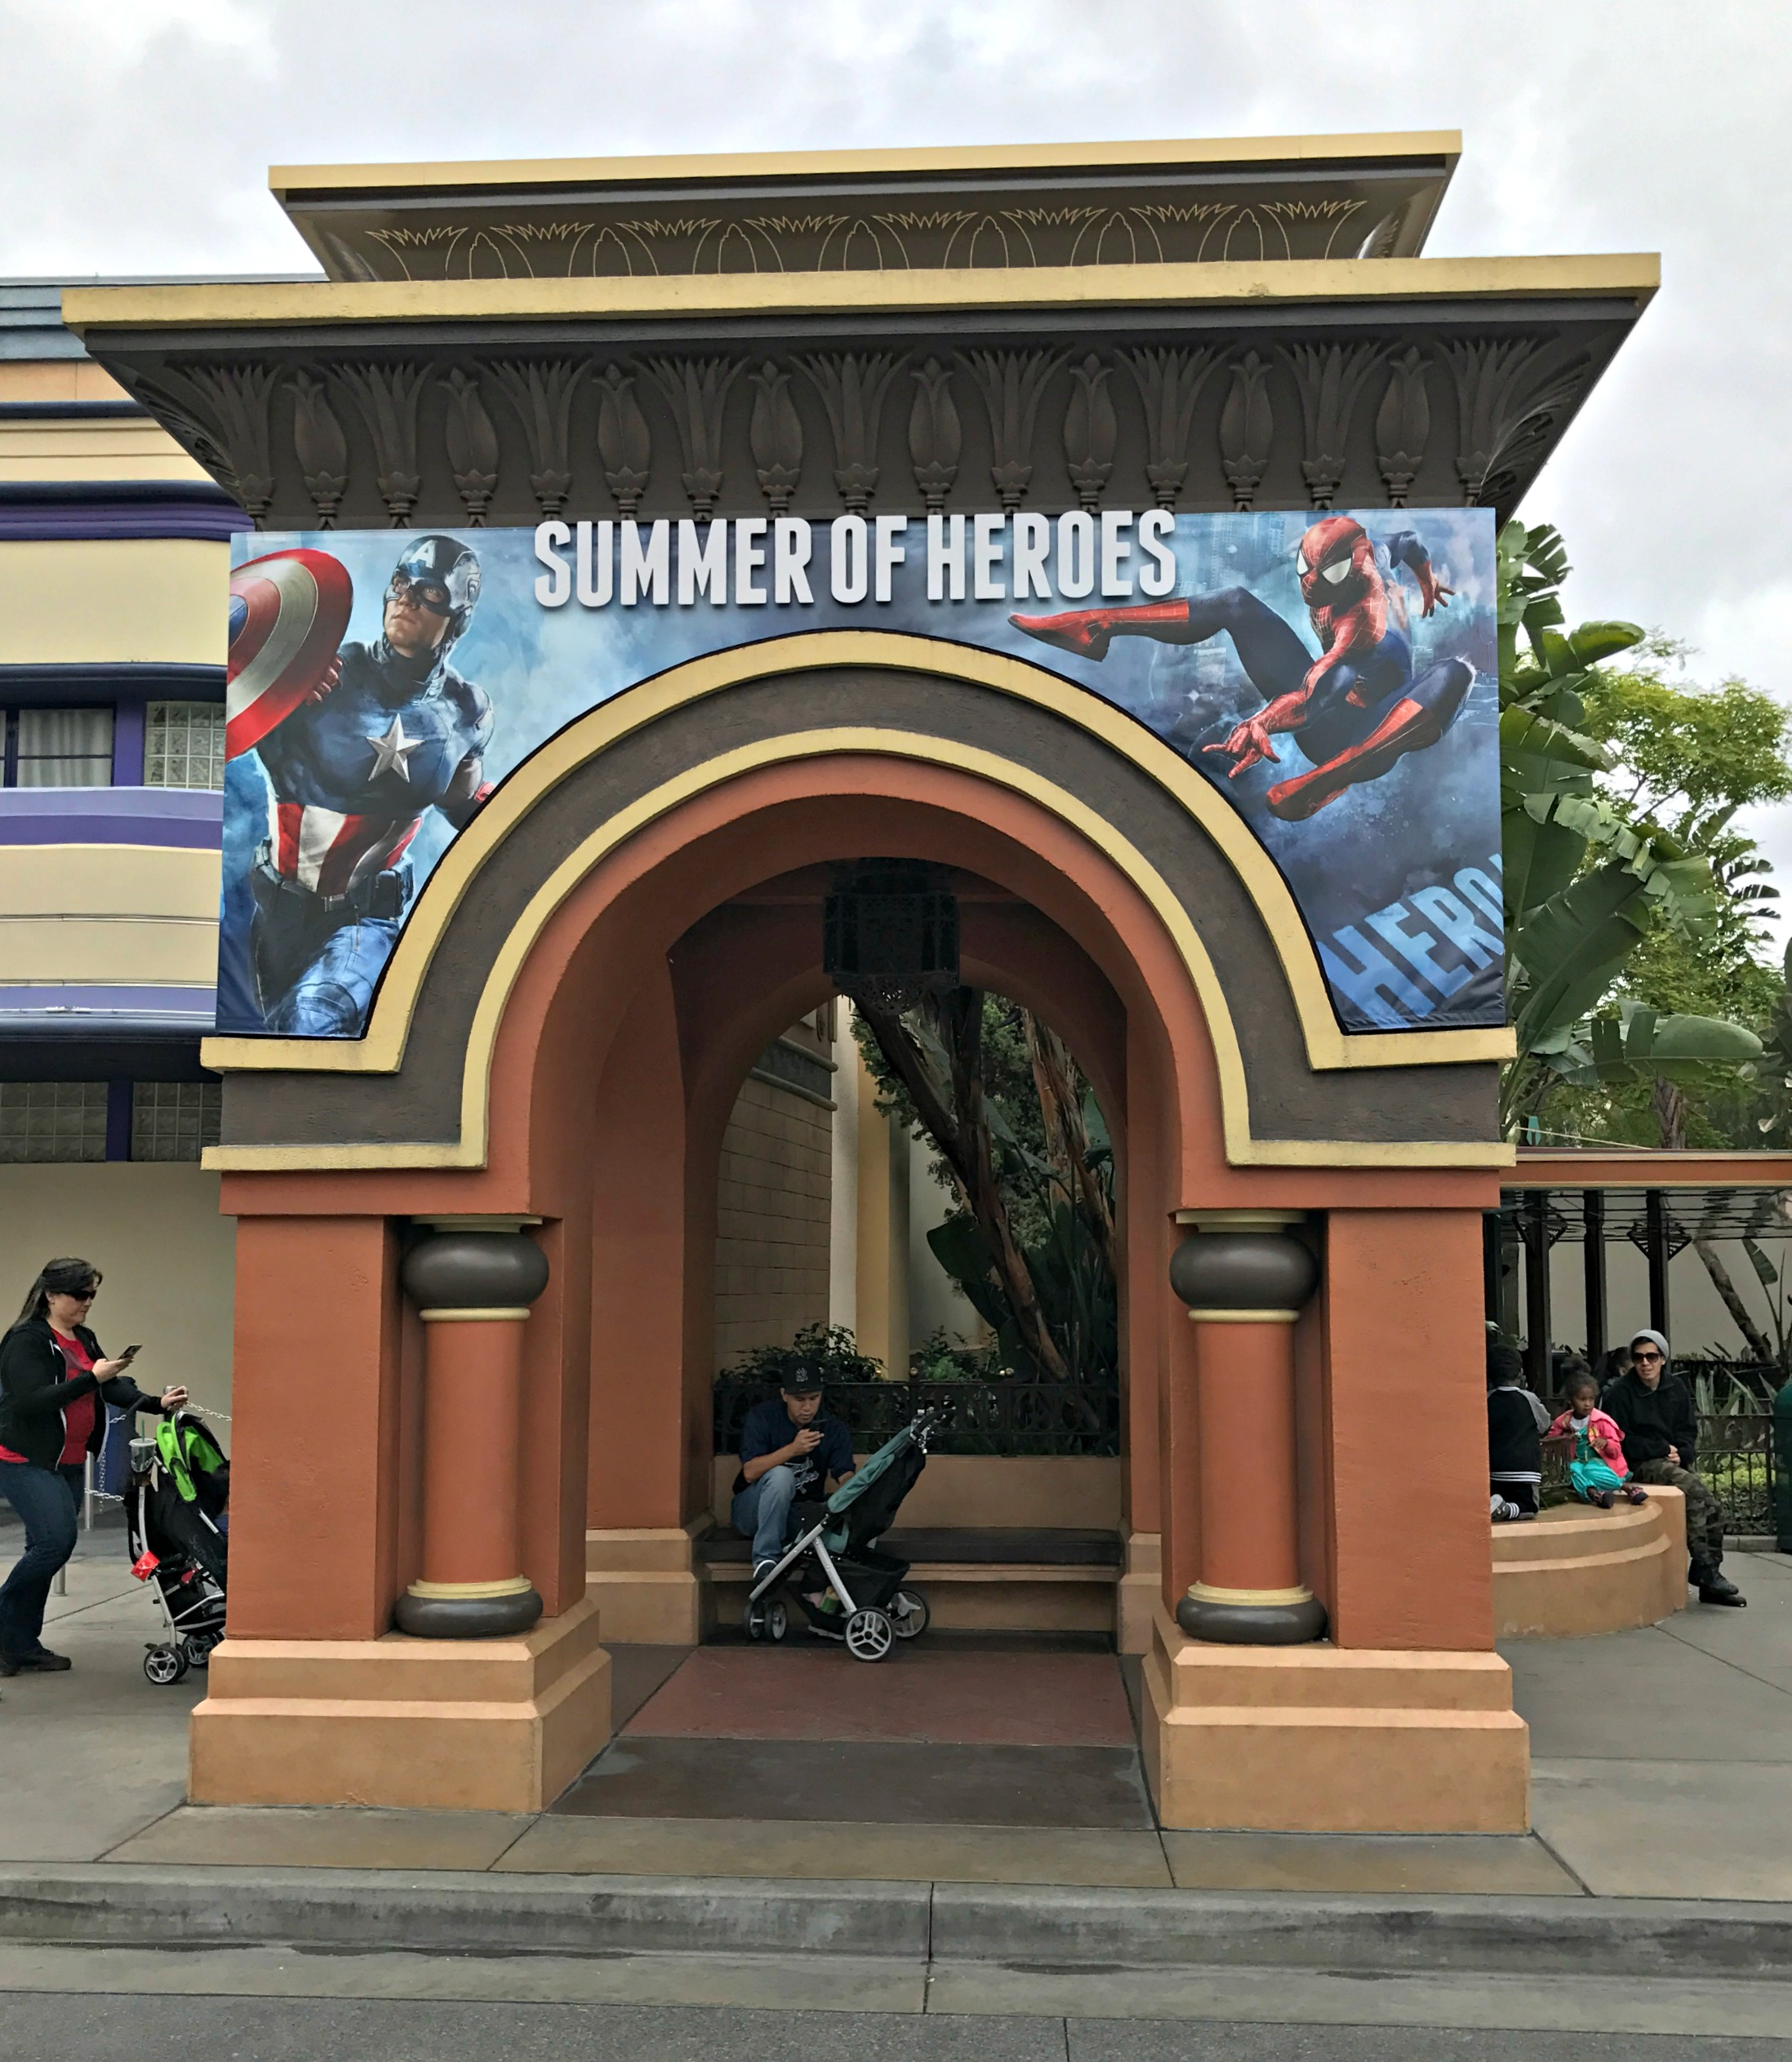 Disneyland Summer of Heroes